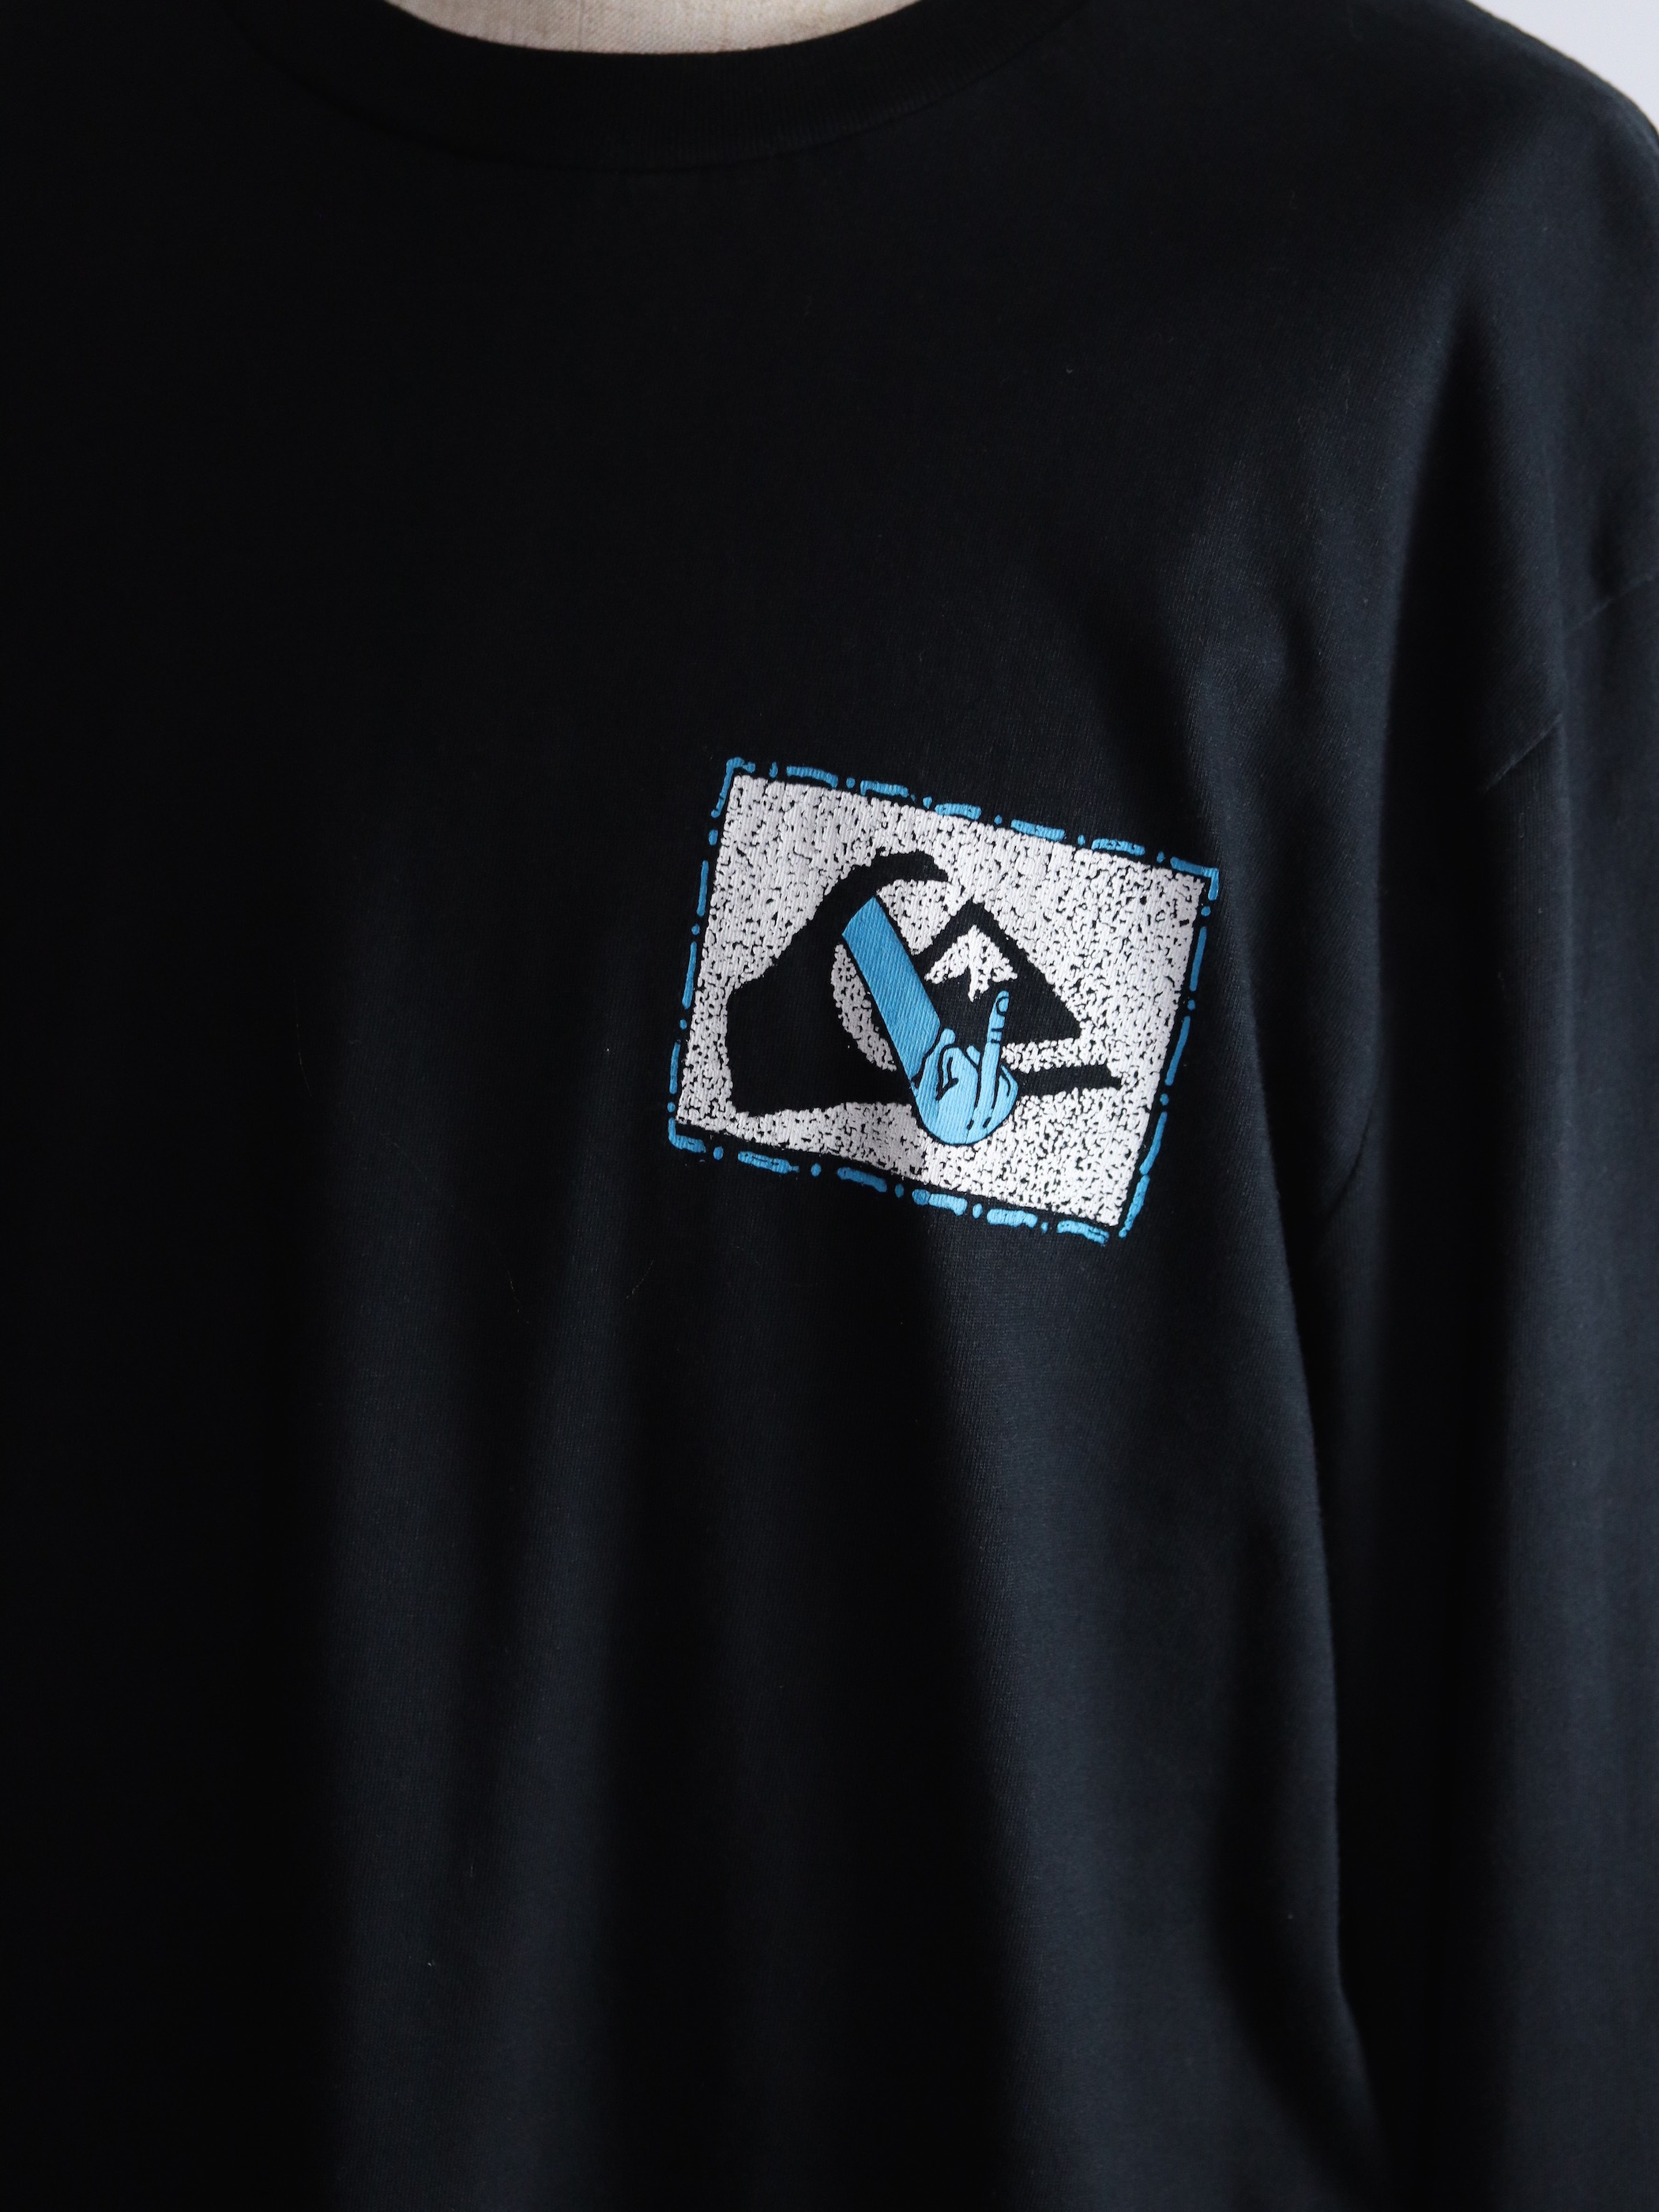 Quik Silver L/S Print T-shirts Made in India